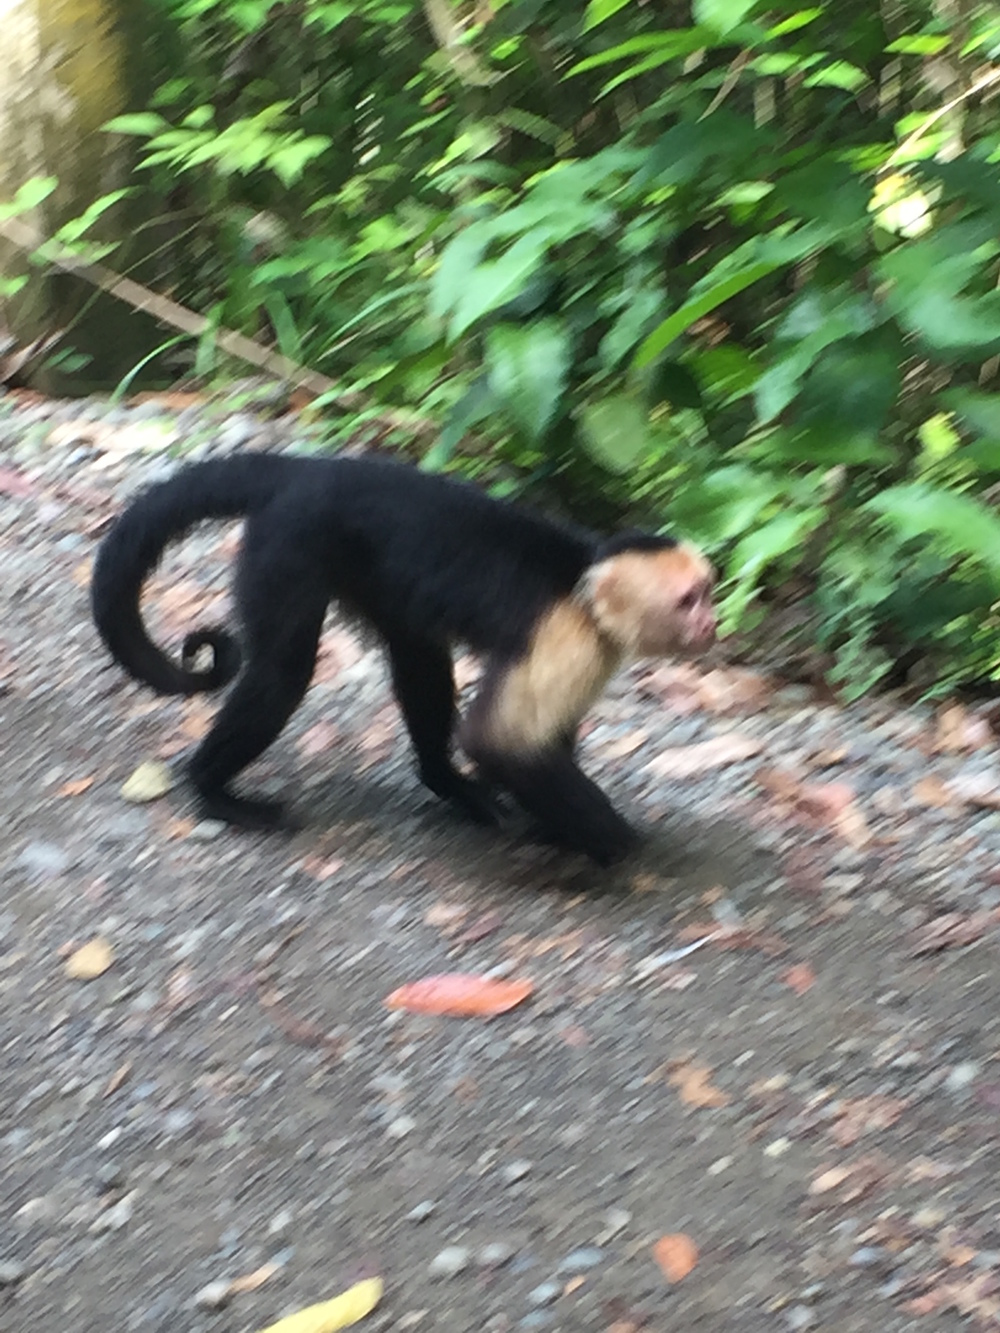 Yep.  Blurry action shot.  This guy was so uninterested in me and so close on our trek through Manuel Antonio national park with our most awesome guide, Bernie Sanchez.  He found three types of monkeys, two types of sloths, and countless other wildlife for us to see firsthand in the jungle.  We also got to see a couple of raccoon bandits lift a zip-locked bag of passports from a man's backpack, prompting a chase.  Gotta respect the animals when you are in the realm of the wild.